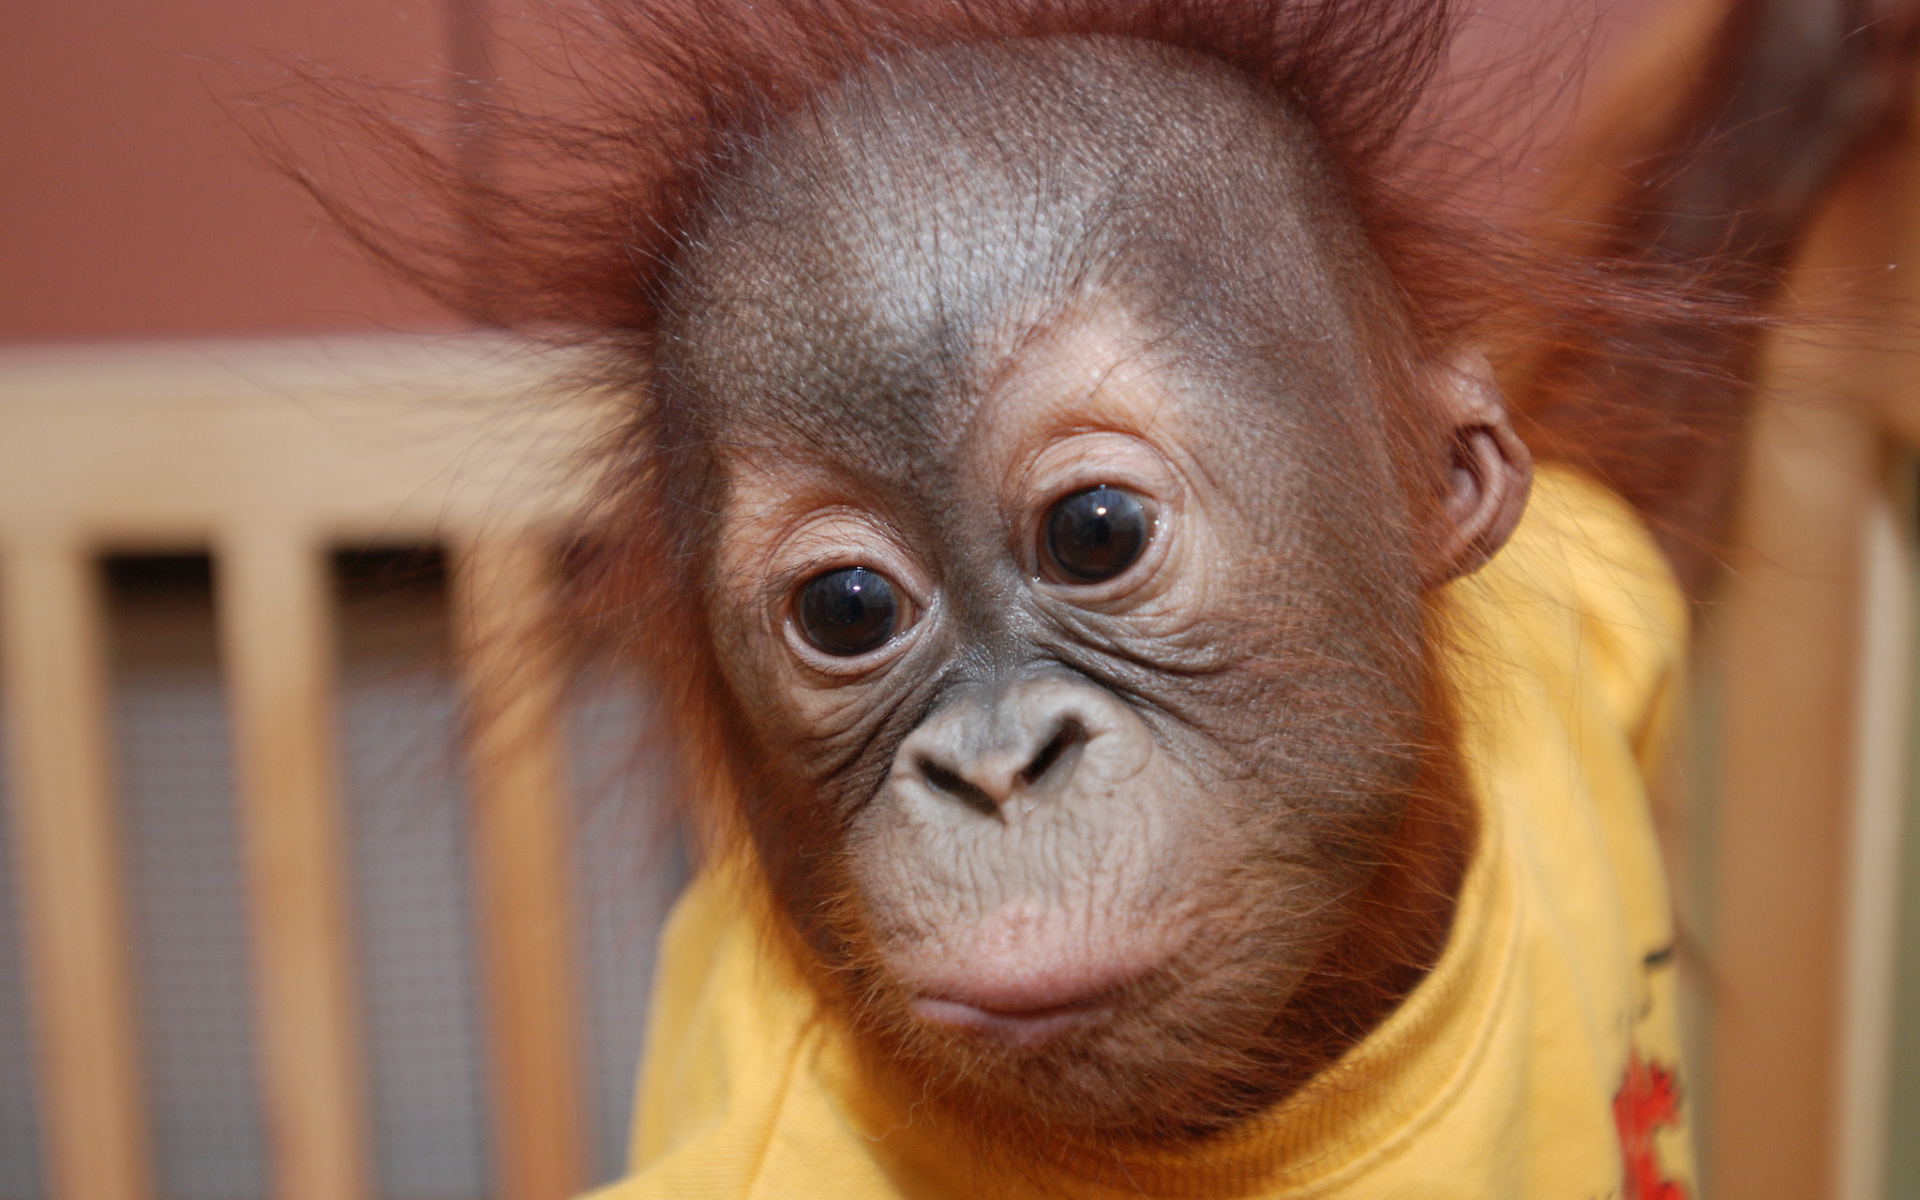 Orang Uta Cute Baby Animal - Hd Desktop Wallpapers | 4k Hd